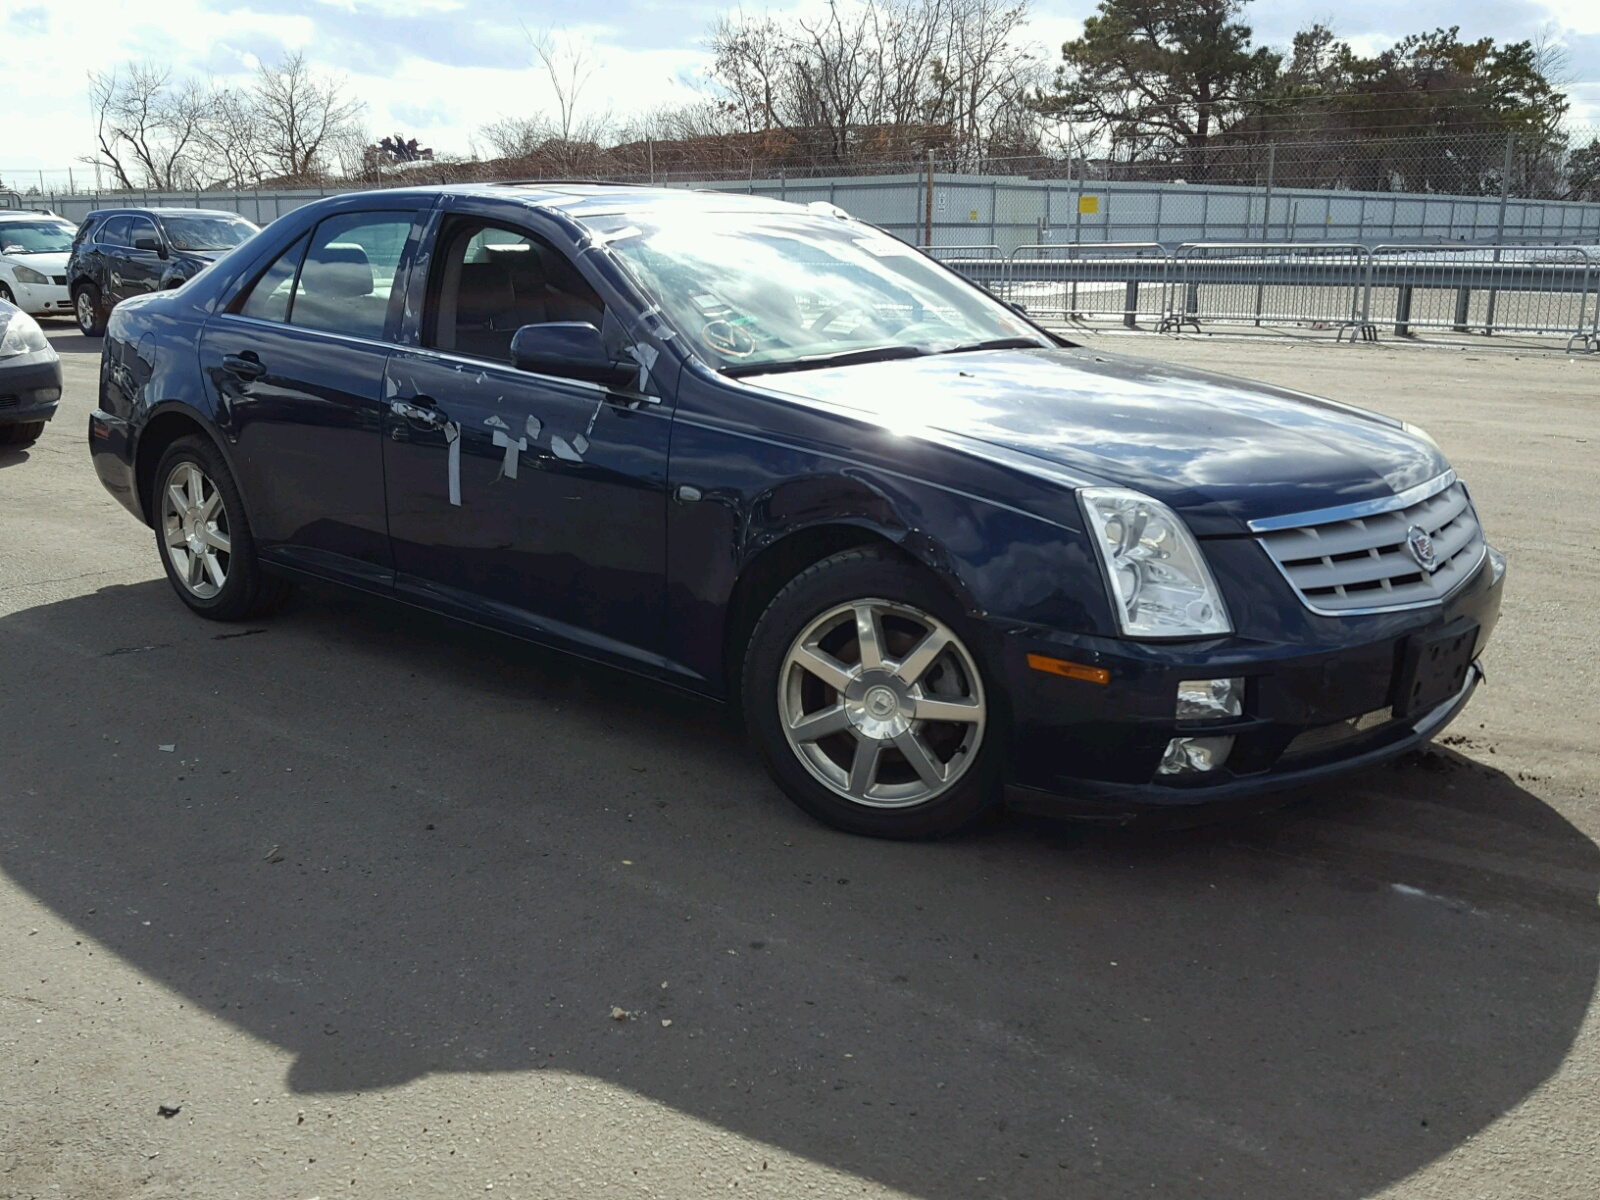 in sts on auctions blue lot cadillac ny of view en long island copart sale online v auto left carfinder certificate title for